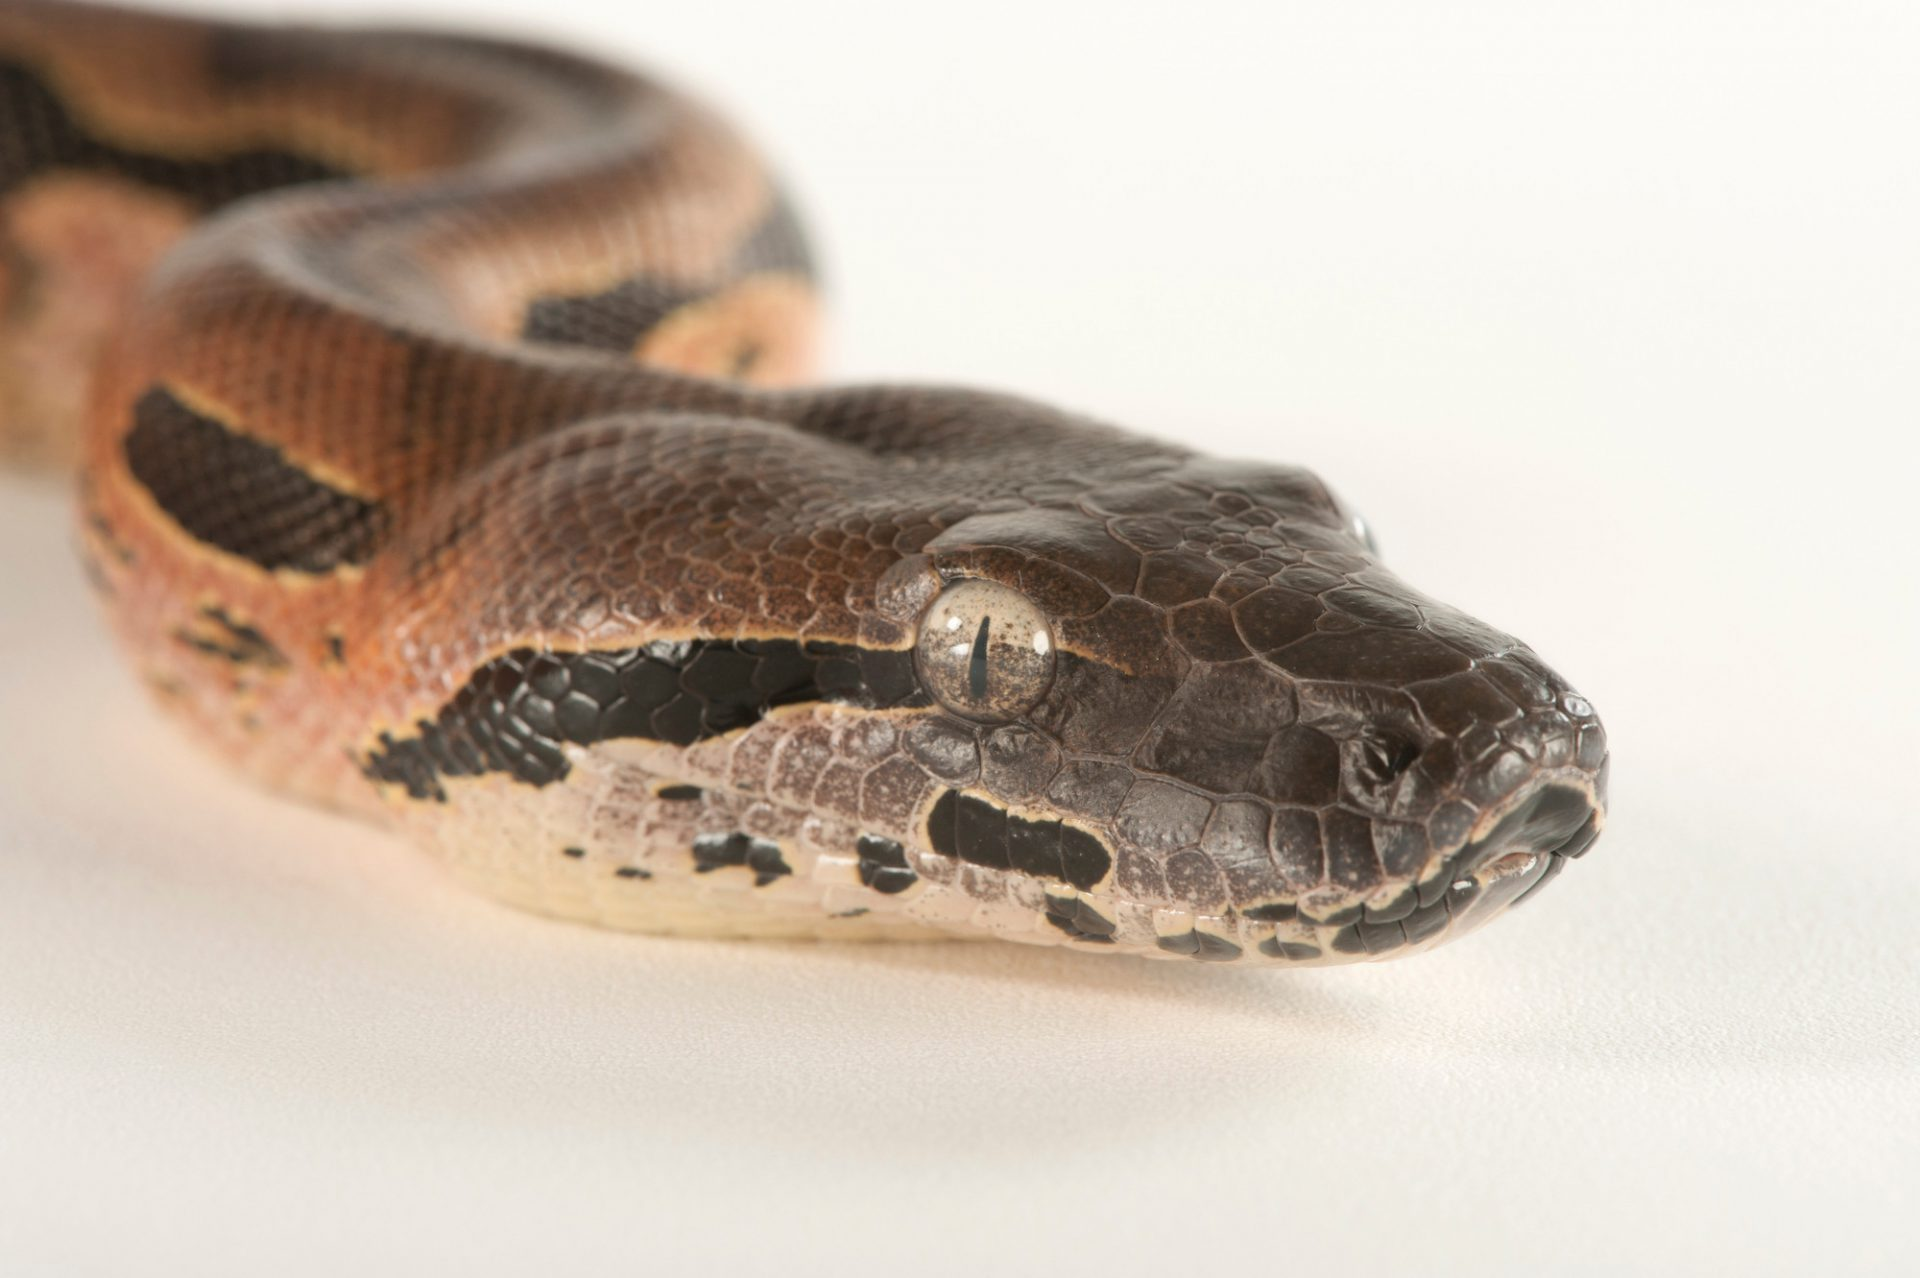 Madagascar ground boa (Acrantophis madagascariensis) at Tampa's Lowry Park Zoo.